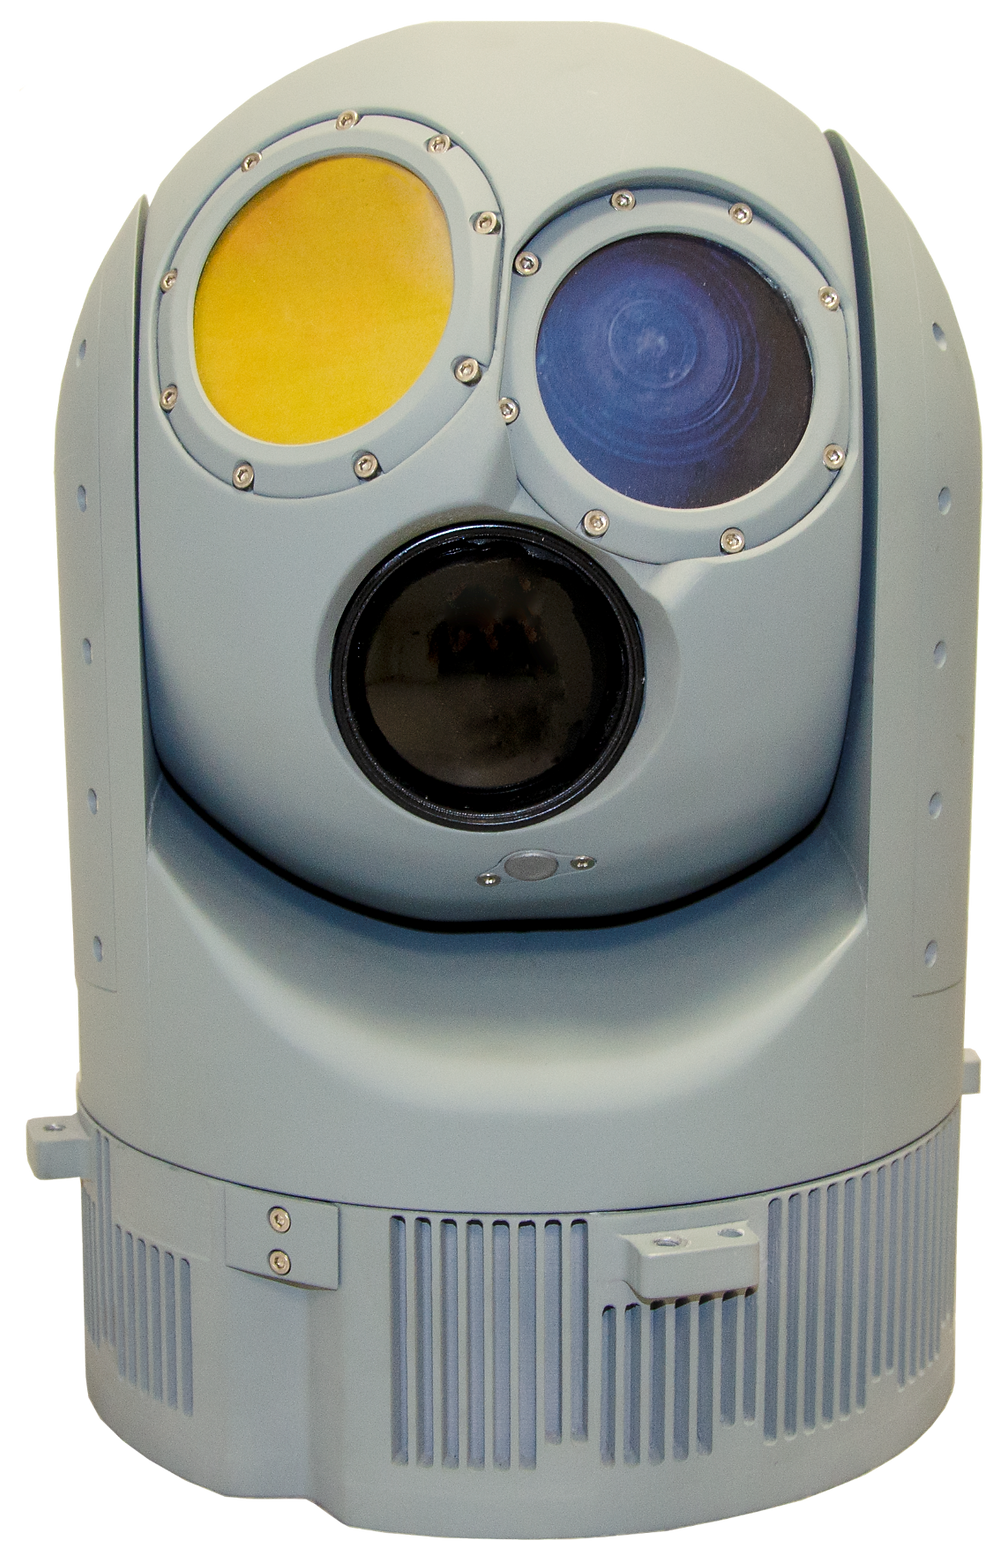 The iSea-25HD lightweight system provides maximum range surveillance using highly sensitive sensors